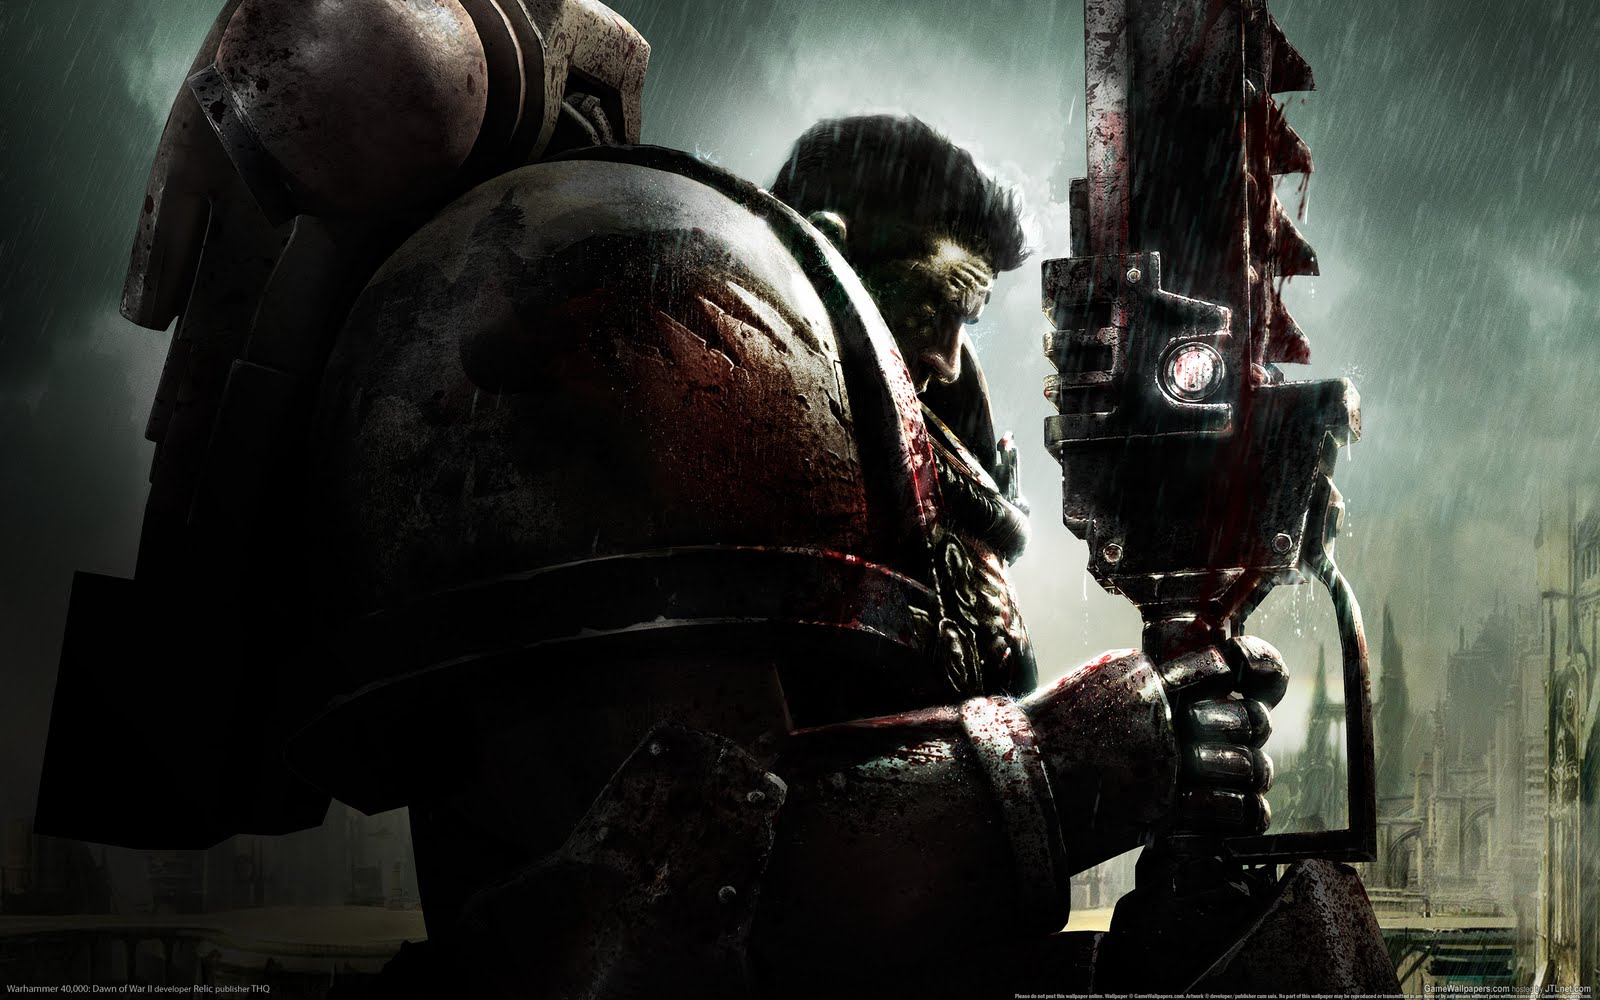 http://4.bp.blogspot.com/-6tyk3RB_6S4/Ta5QhjwRFAI/AAAAAAAAAIg/GaTCwSbFnVQ/s1600/7904_1_other_wallpapers_space_marine.jpg